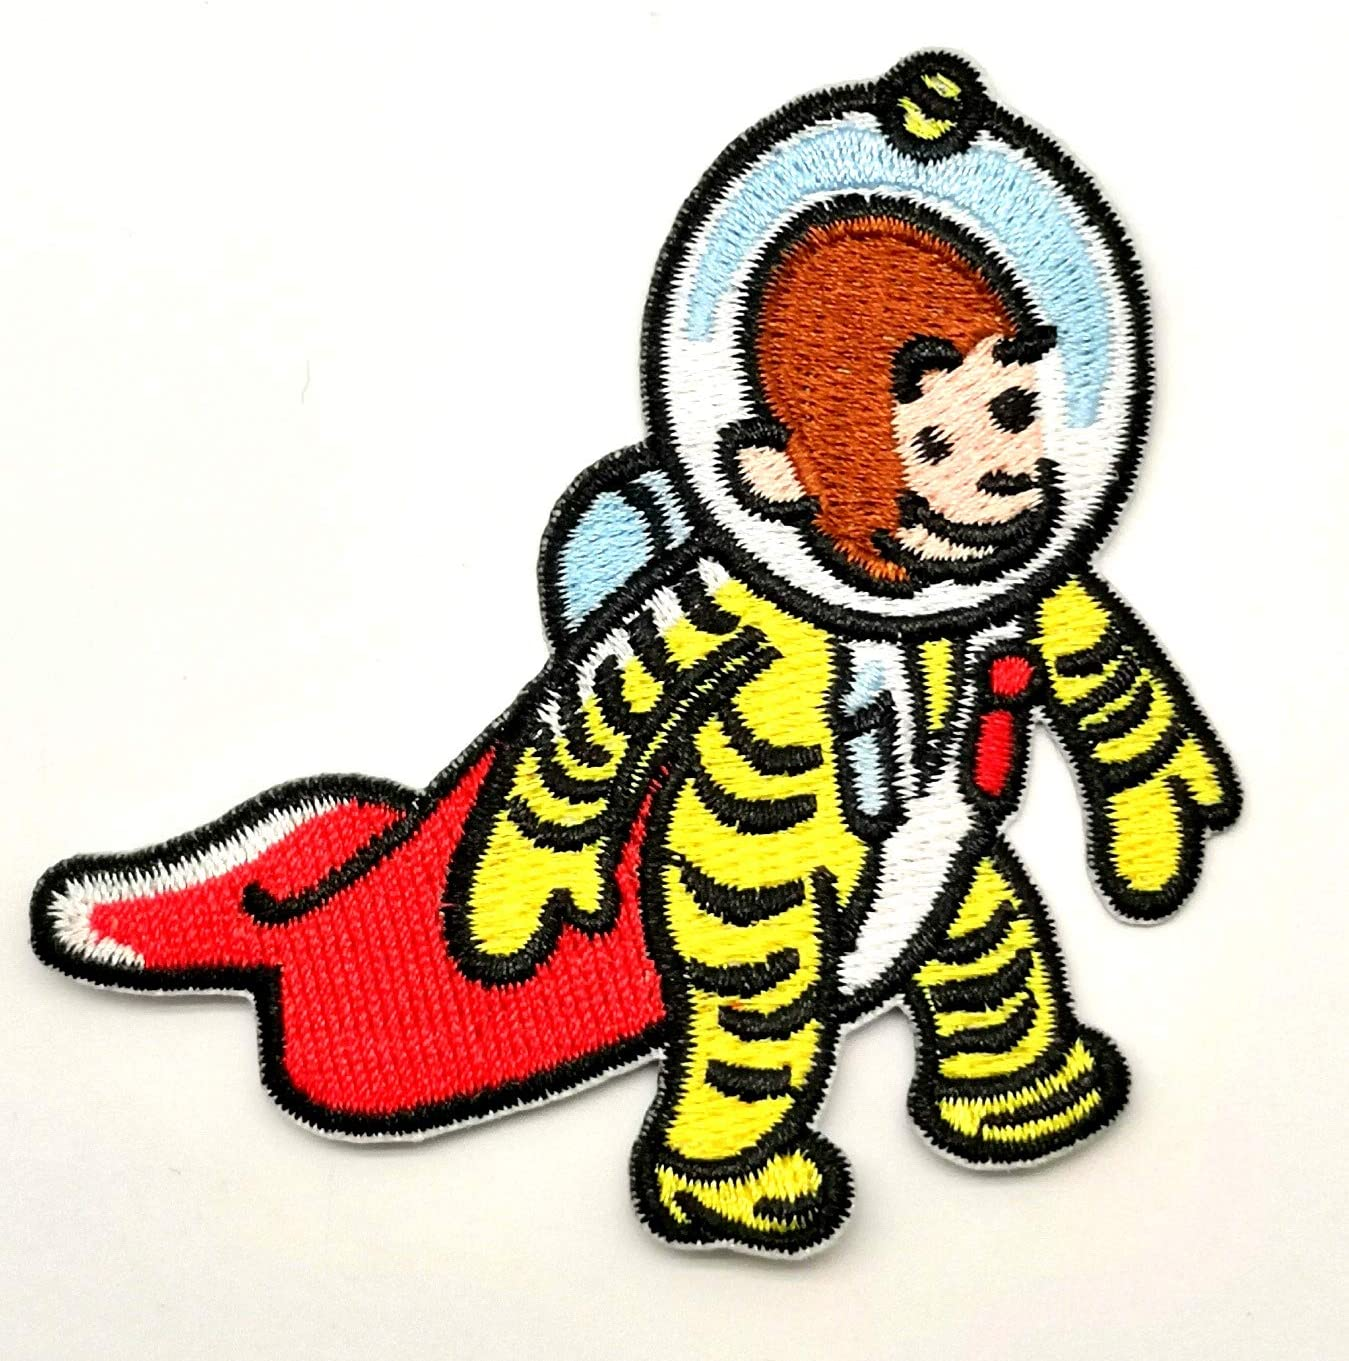 rocket cloth badges diy embroidered iron//sewing on patches for clothes H Js